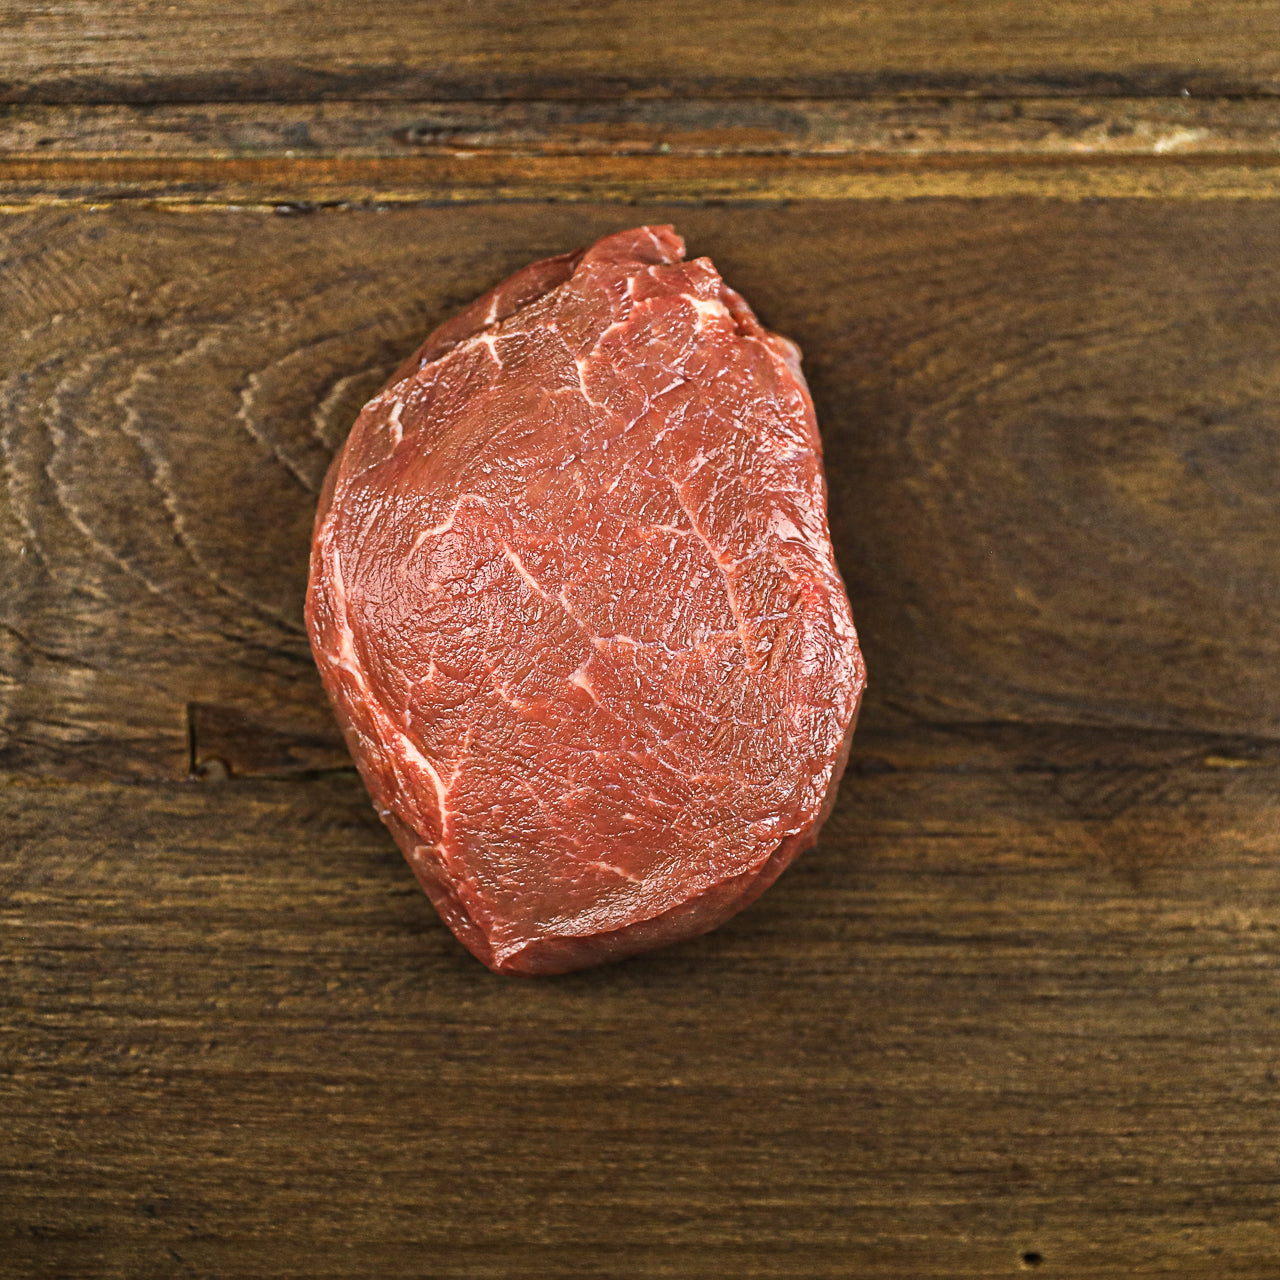 Grass-Fed Grass-Fed Pasture-Finished Sirloin Tip Steak